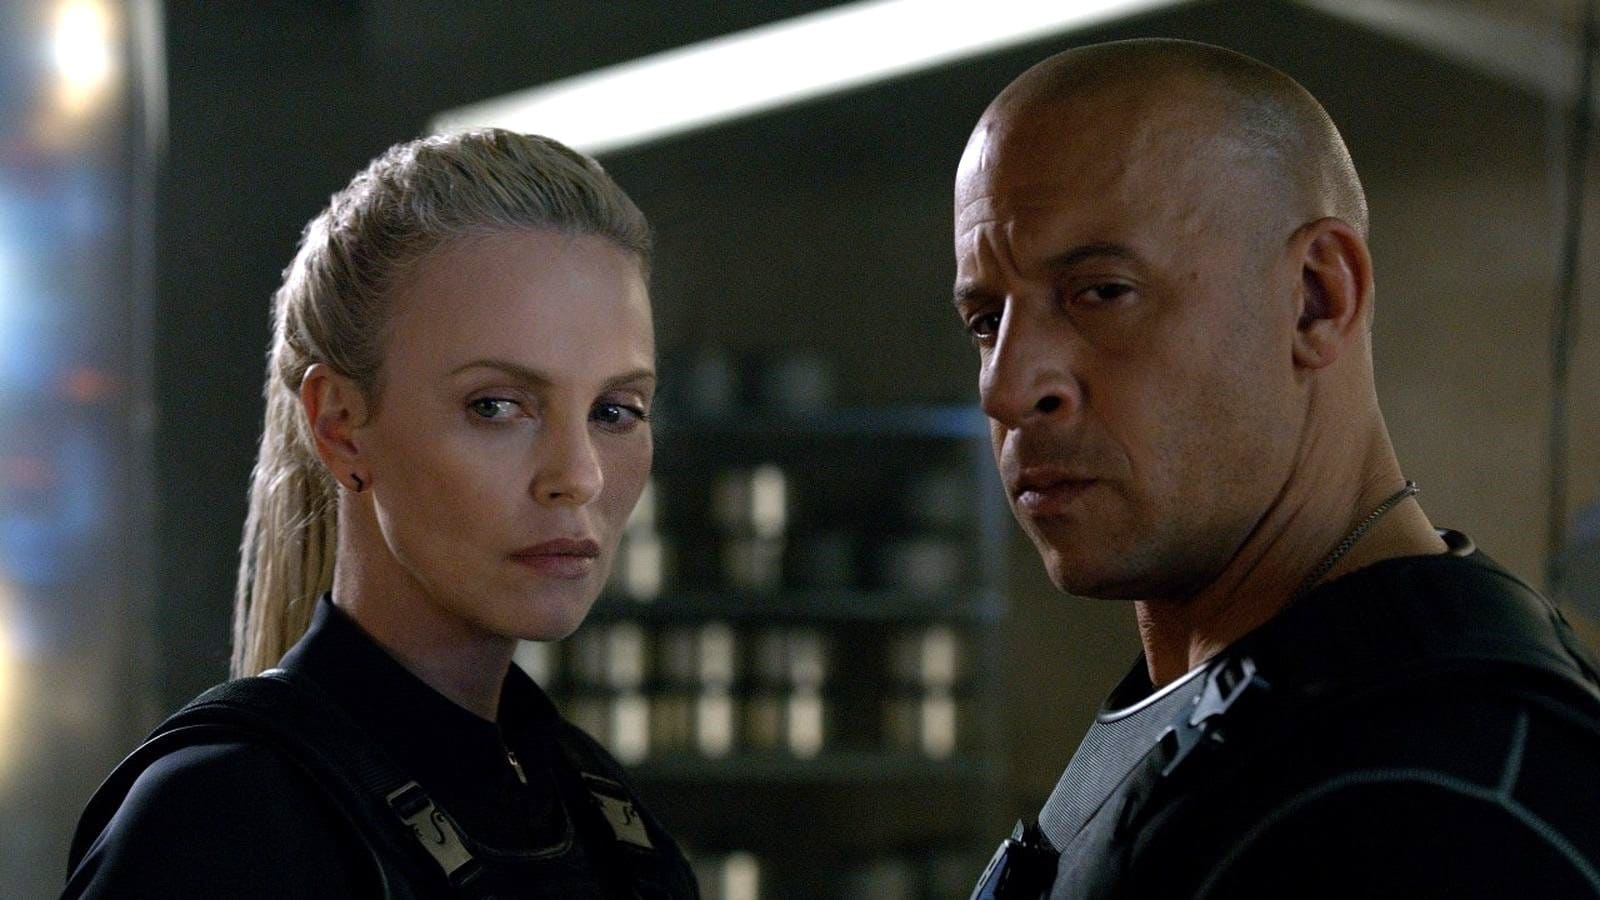 Fast and Furious 8: The Dumb, Fun Action Movie You've Been Waiting For?